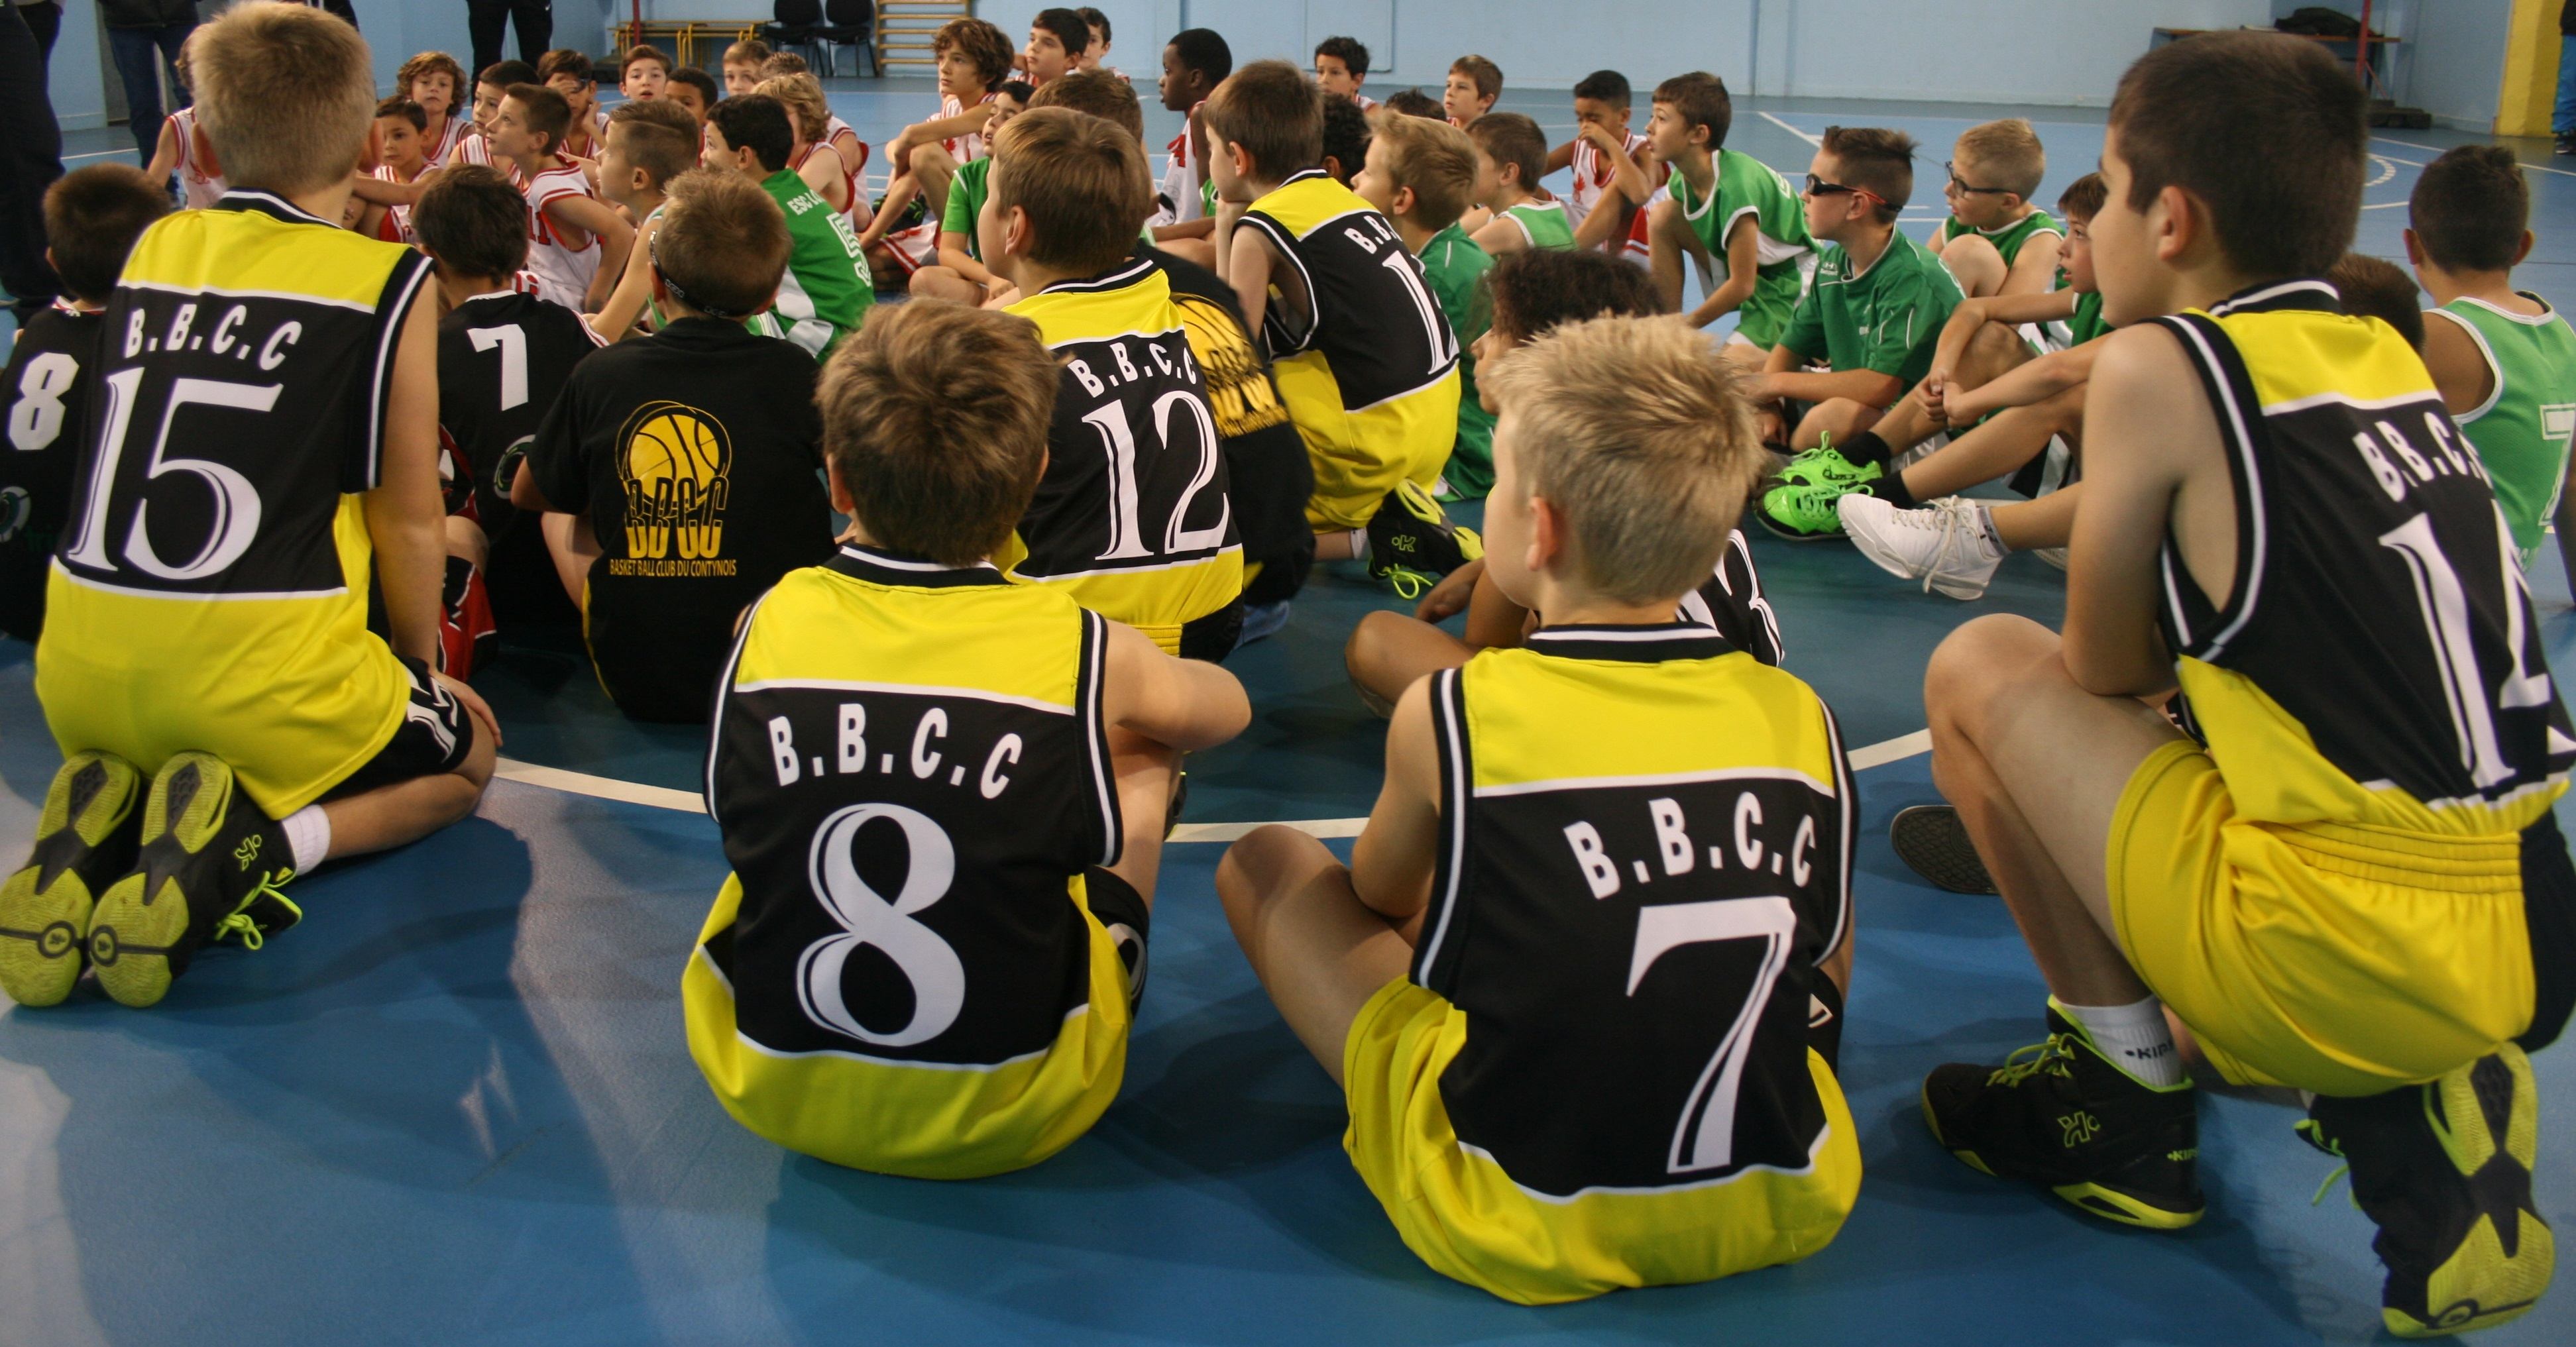 Basket-Ball Club du Contynois